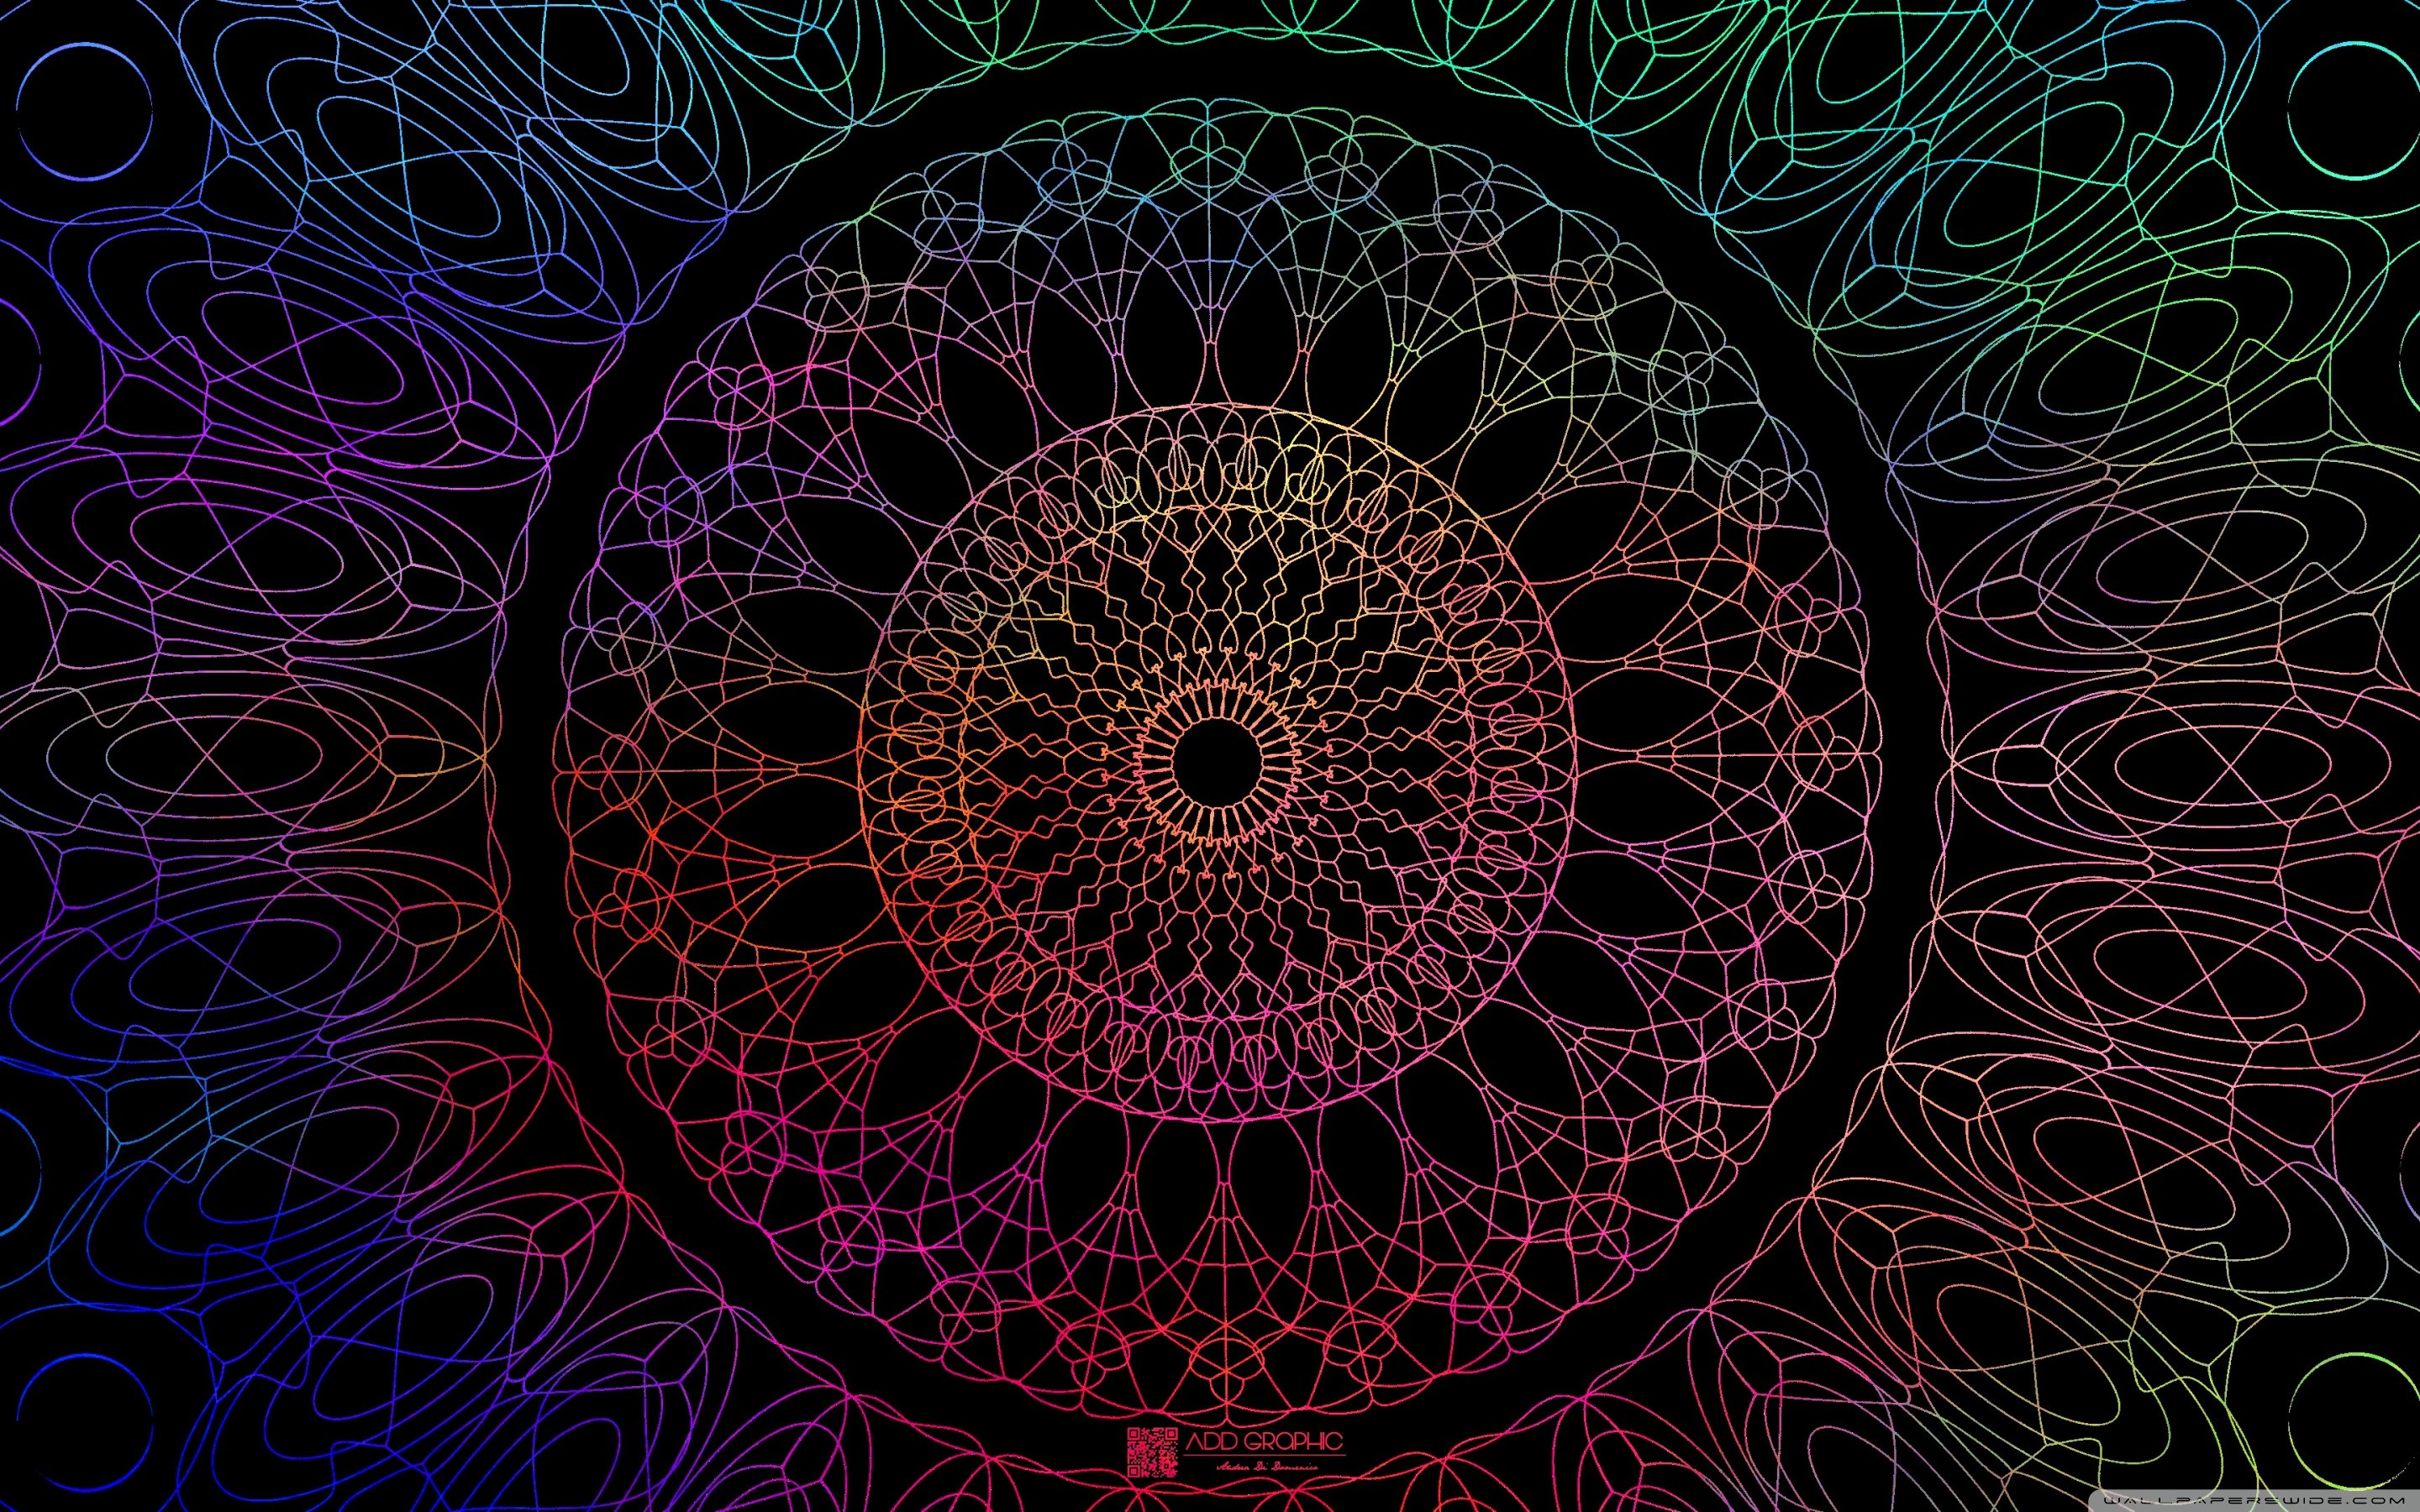 Mandala Wallpaper Download Free Amazing High Resolution